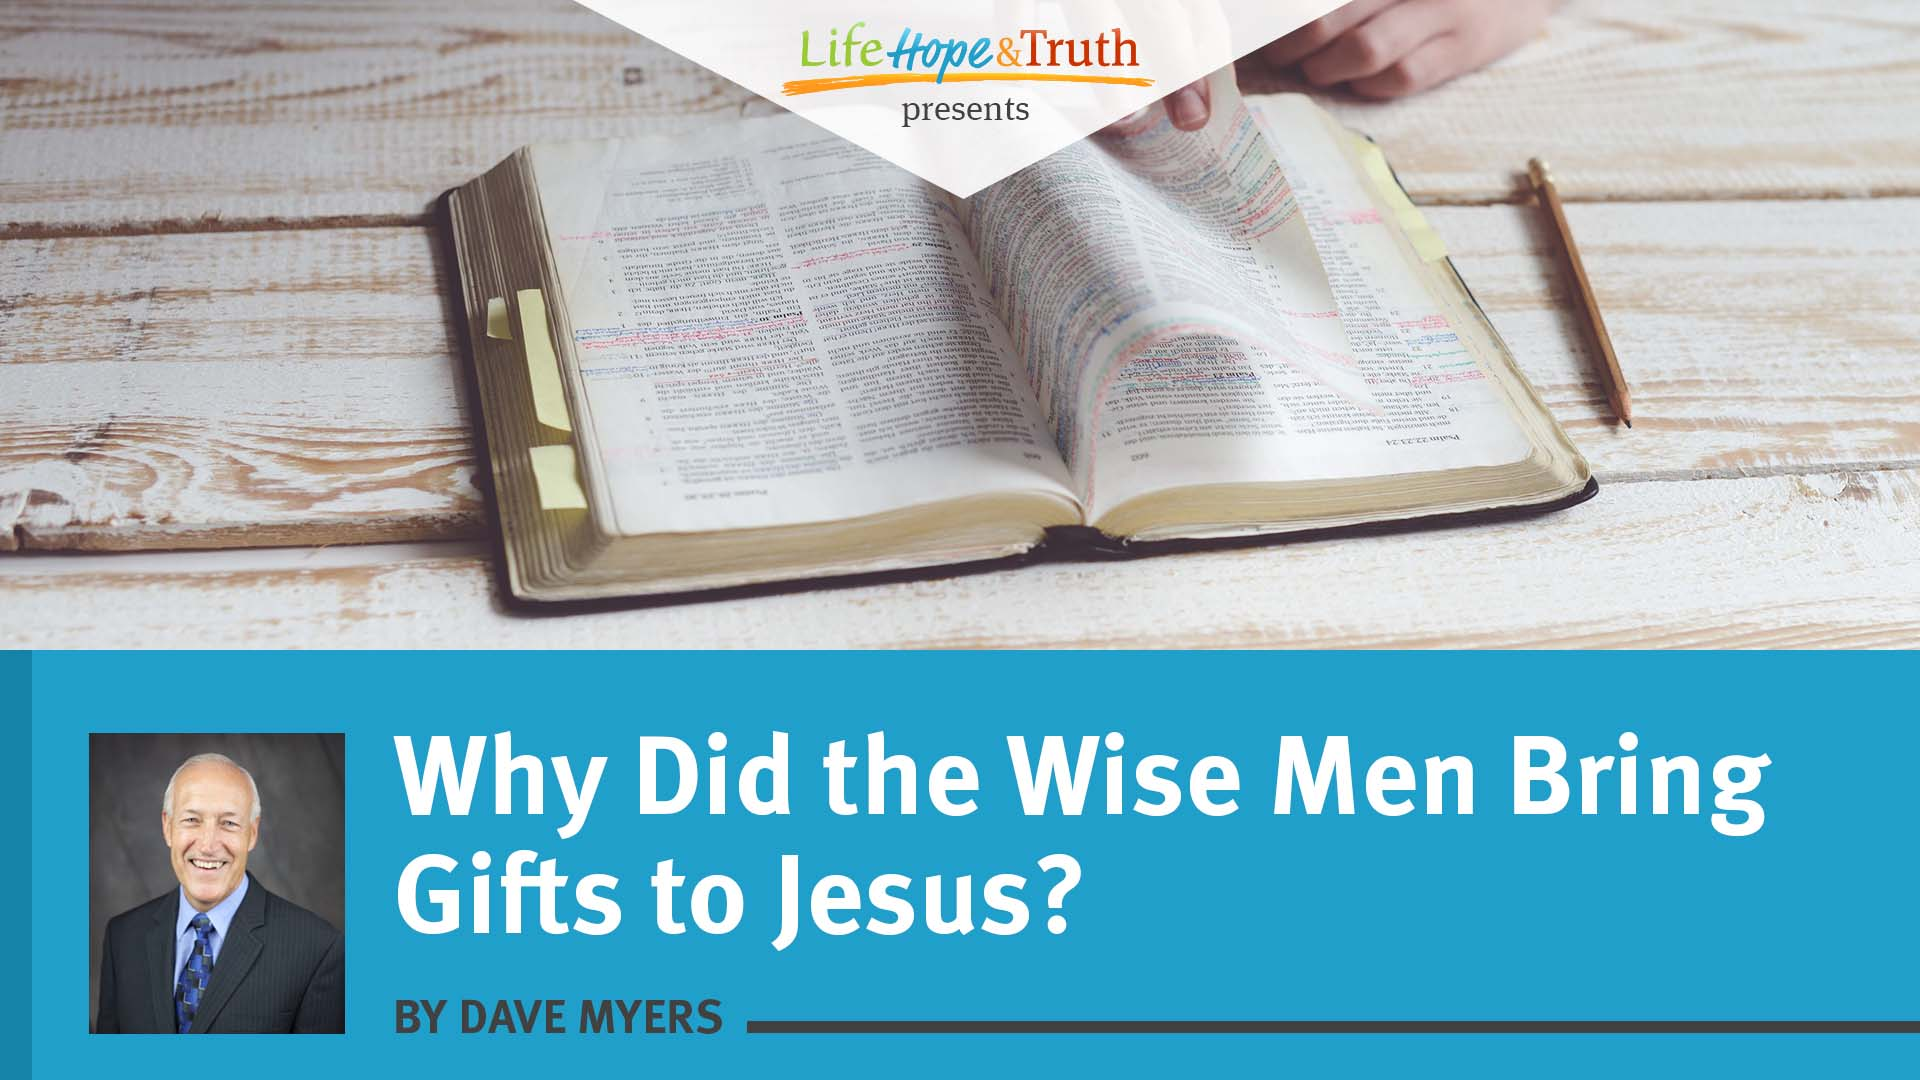 Why Did the Wise Men Bring Gifts to Jesus